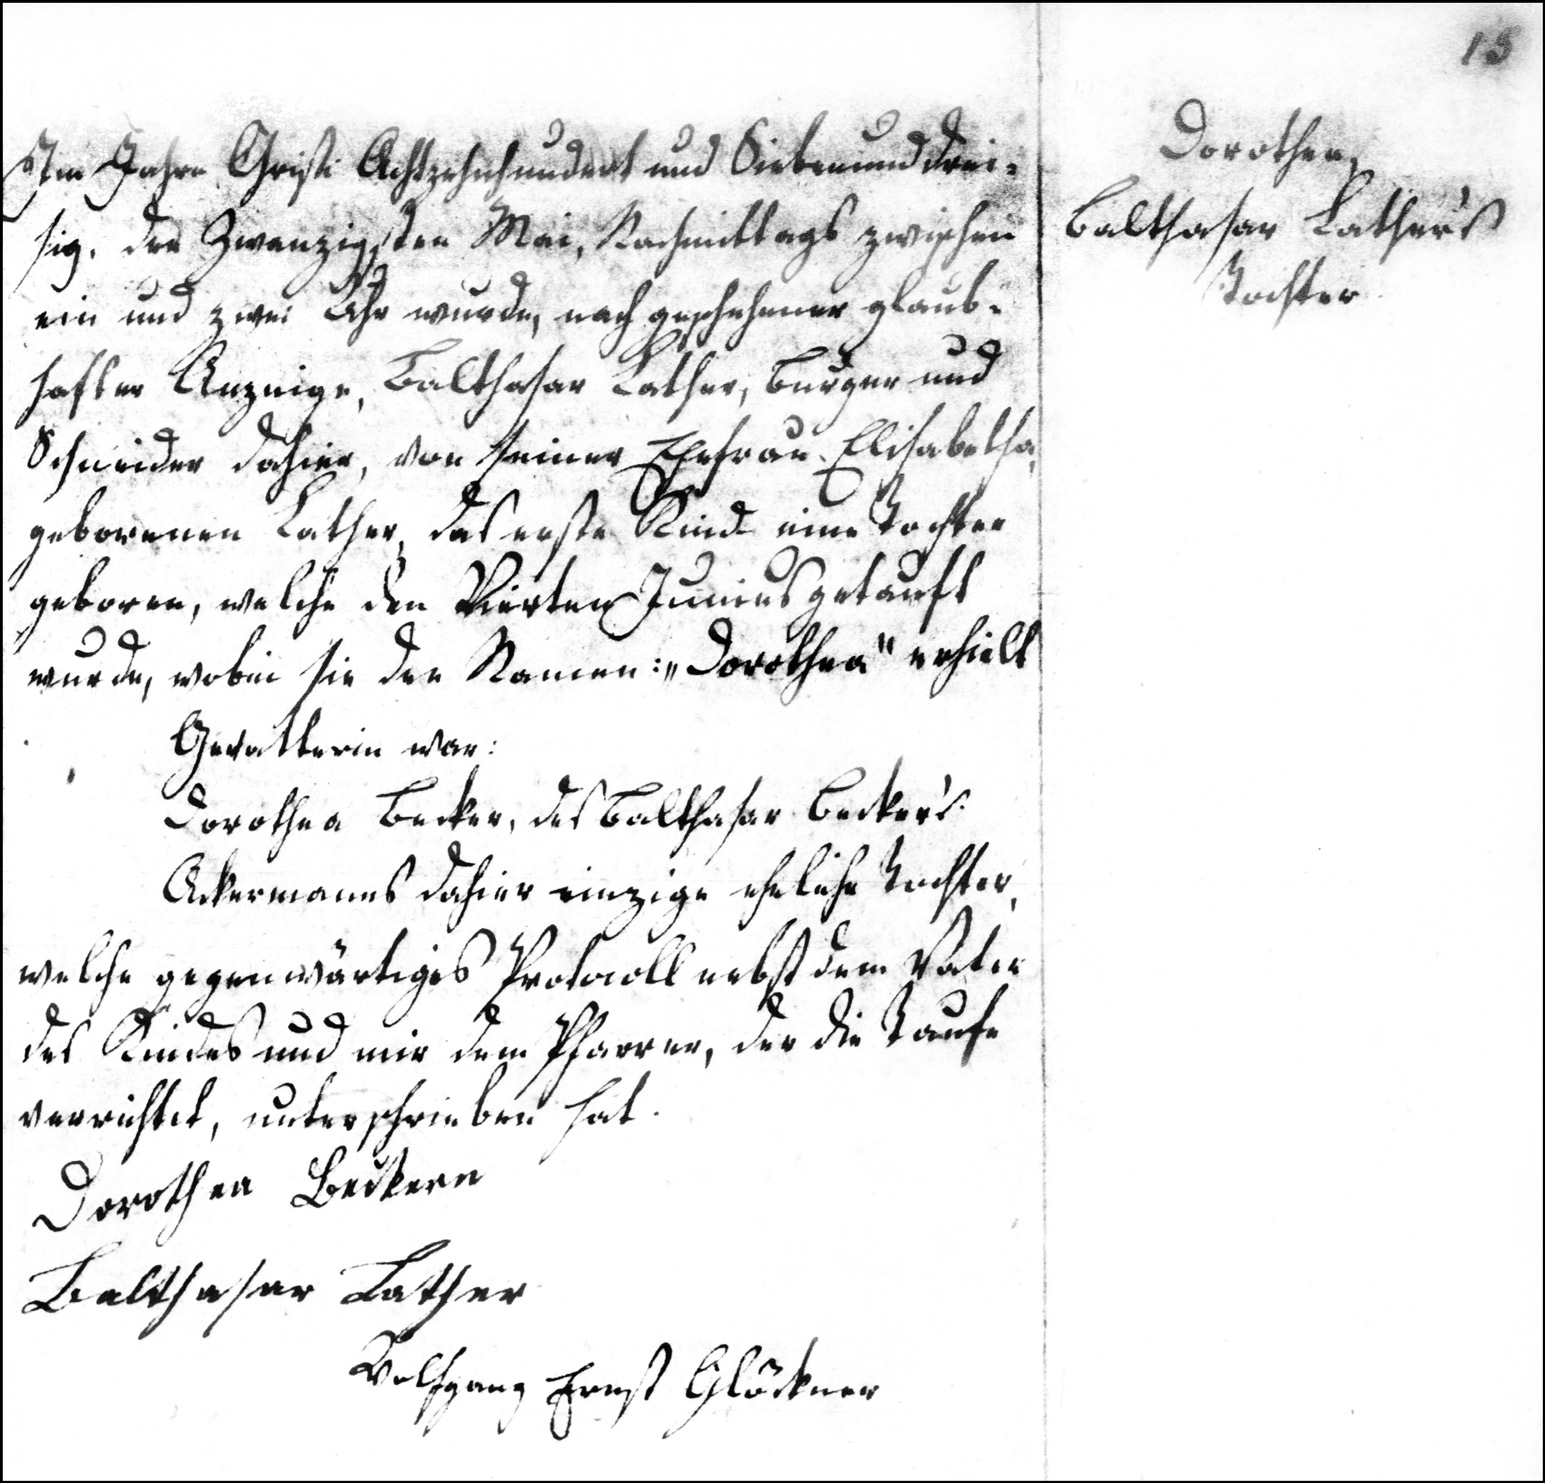 The Birth and Baptismal Record of Dorothea Lather - 1837